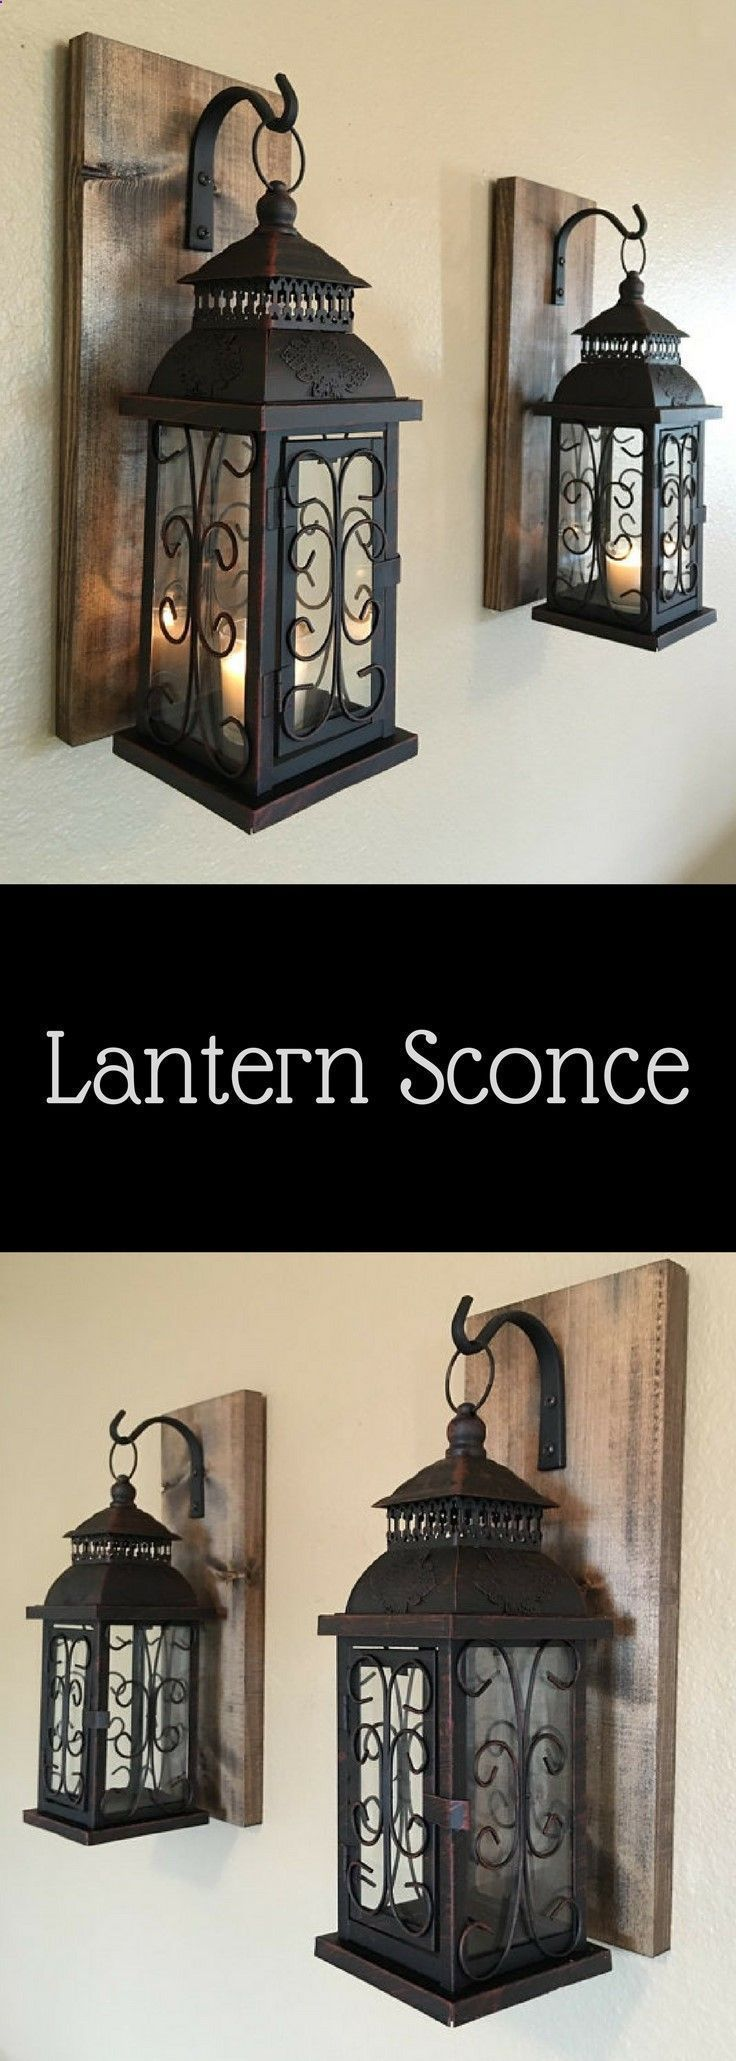 Lantern pair wall decor, wall sconces, bathroom decor, home and living, wrought iron hook, rustic wood boards, bedroom decor, rustic home décor, diy, country, living room, farmhouse, on a budget, modern, ideas, cabin, kitchen, vintage, bedroom, bathroom #homedecorideaslivingroom #homedecordiy